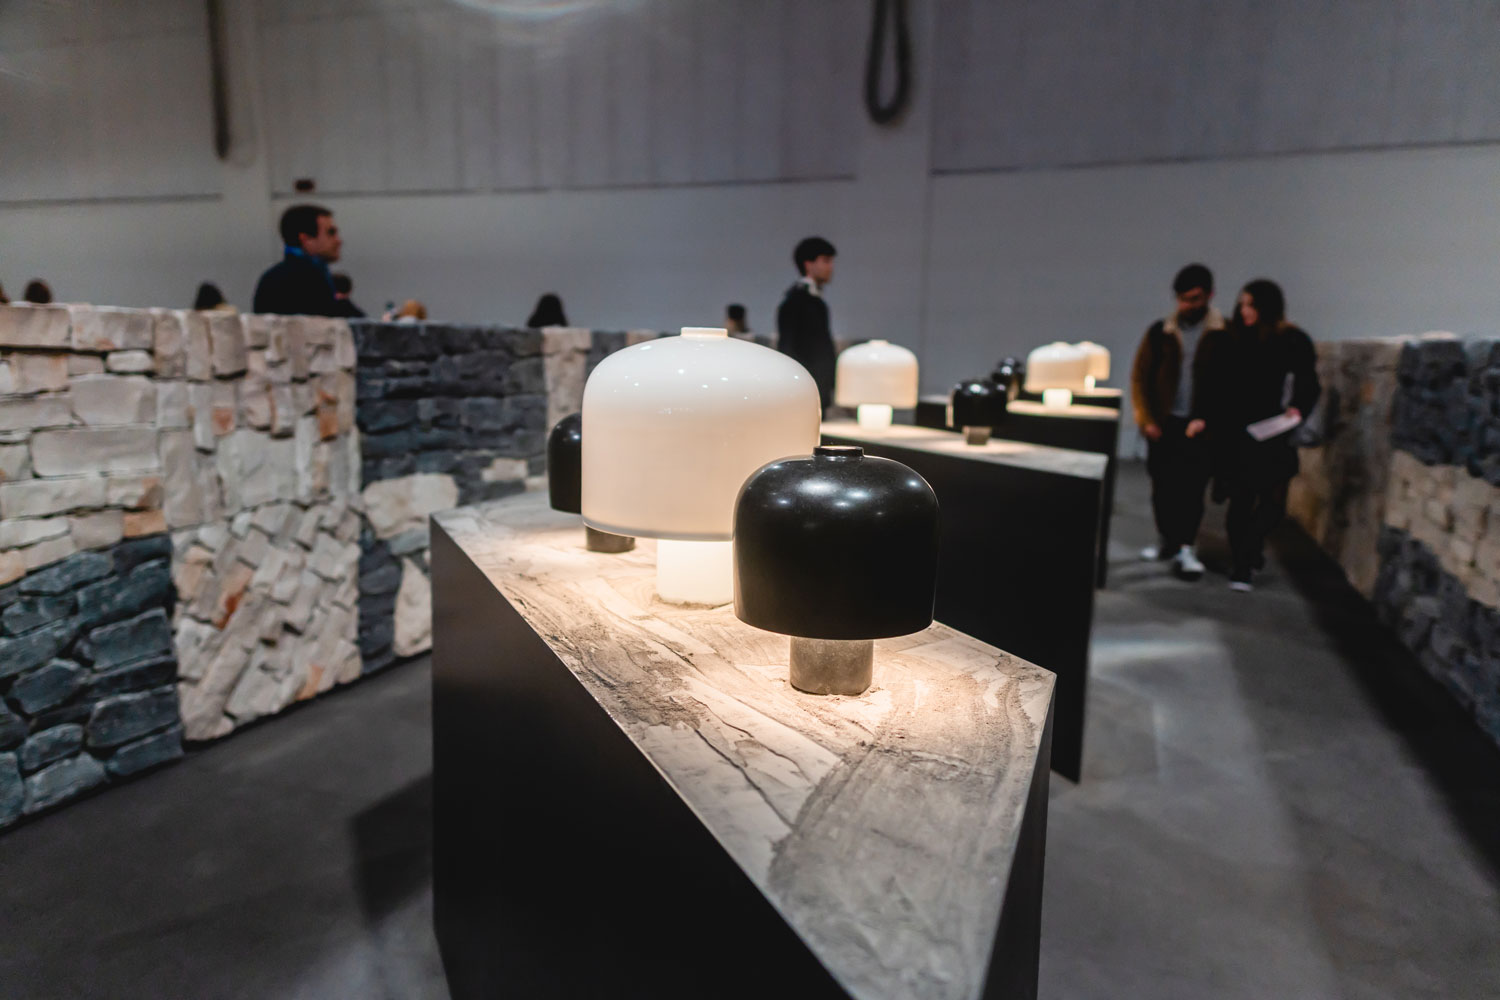 Best installations seen during milan design week 2019 - Hermès